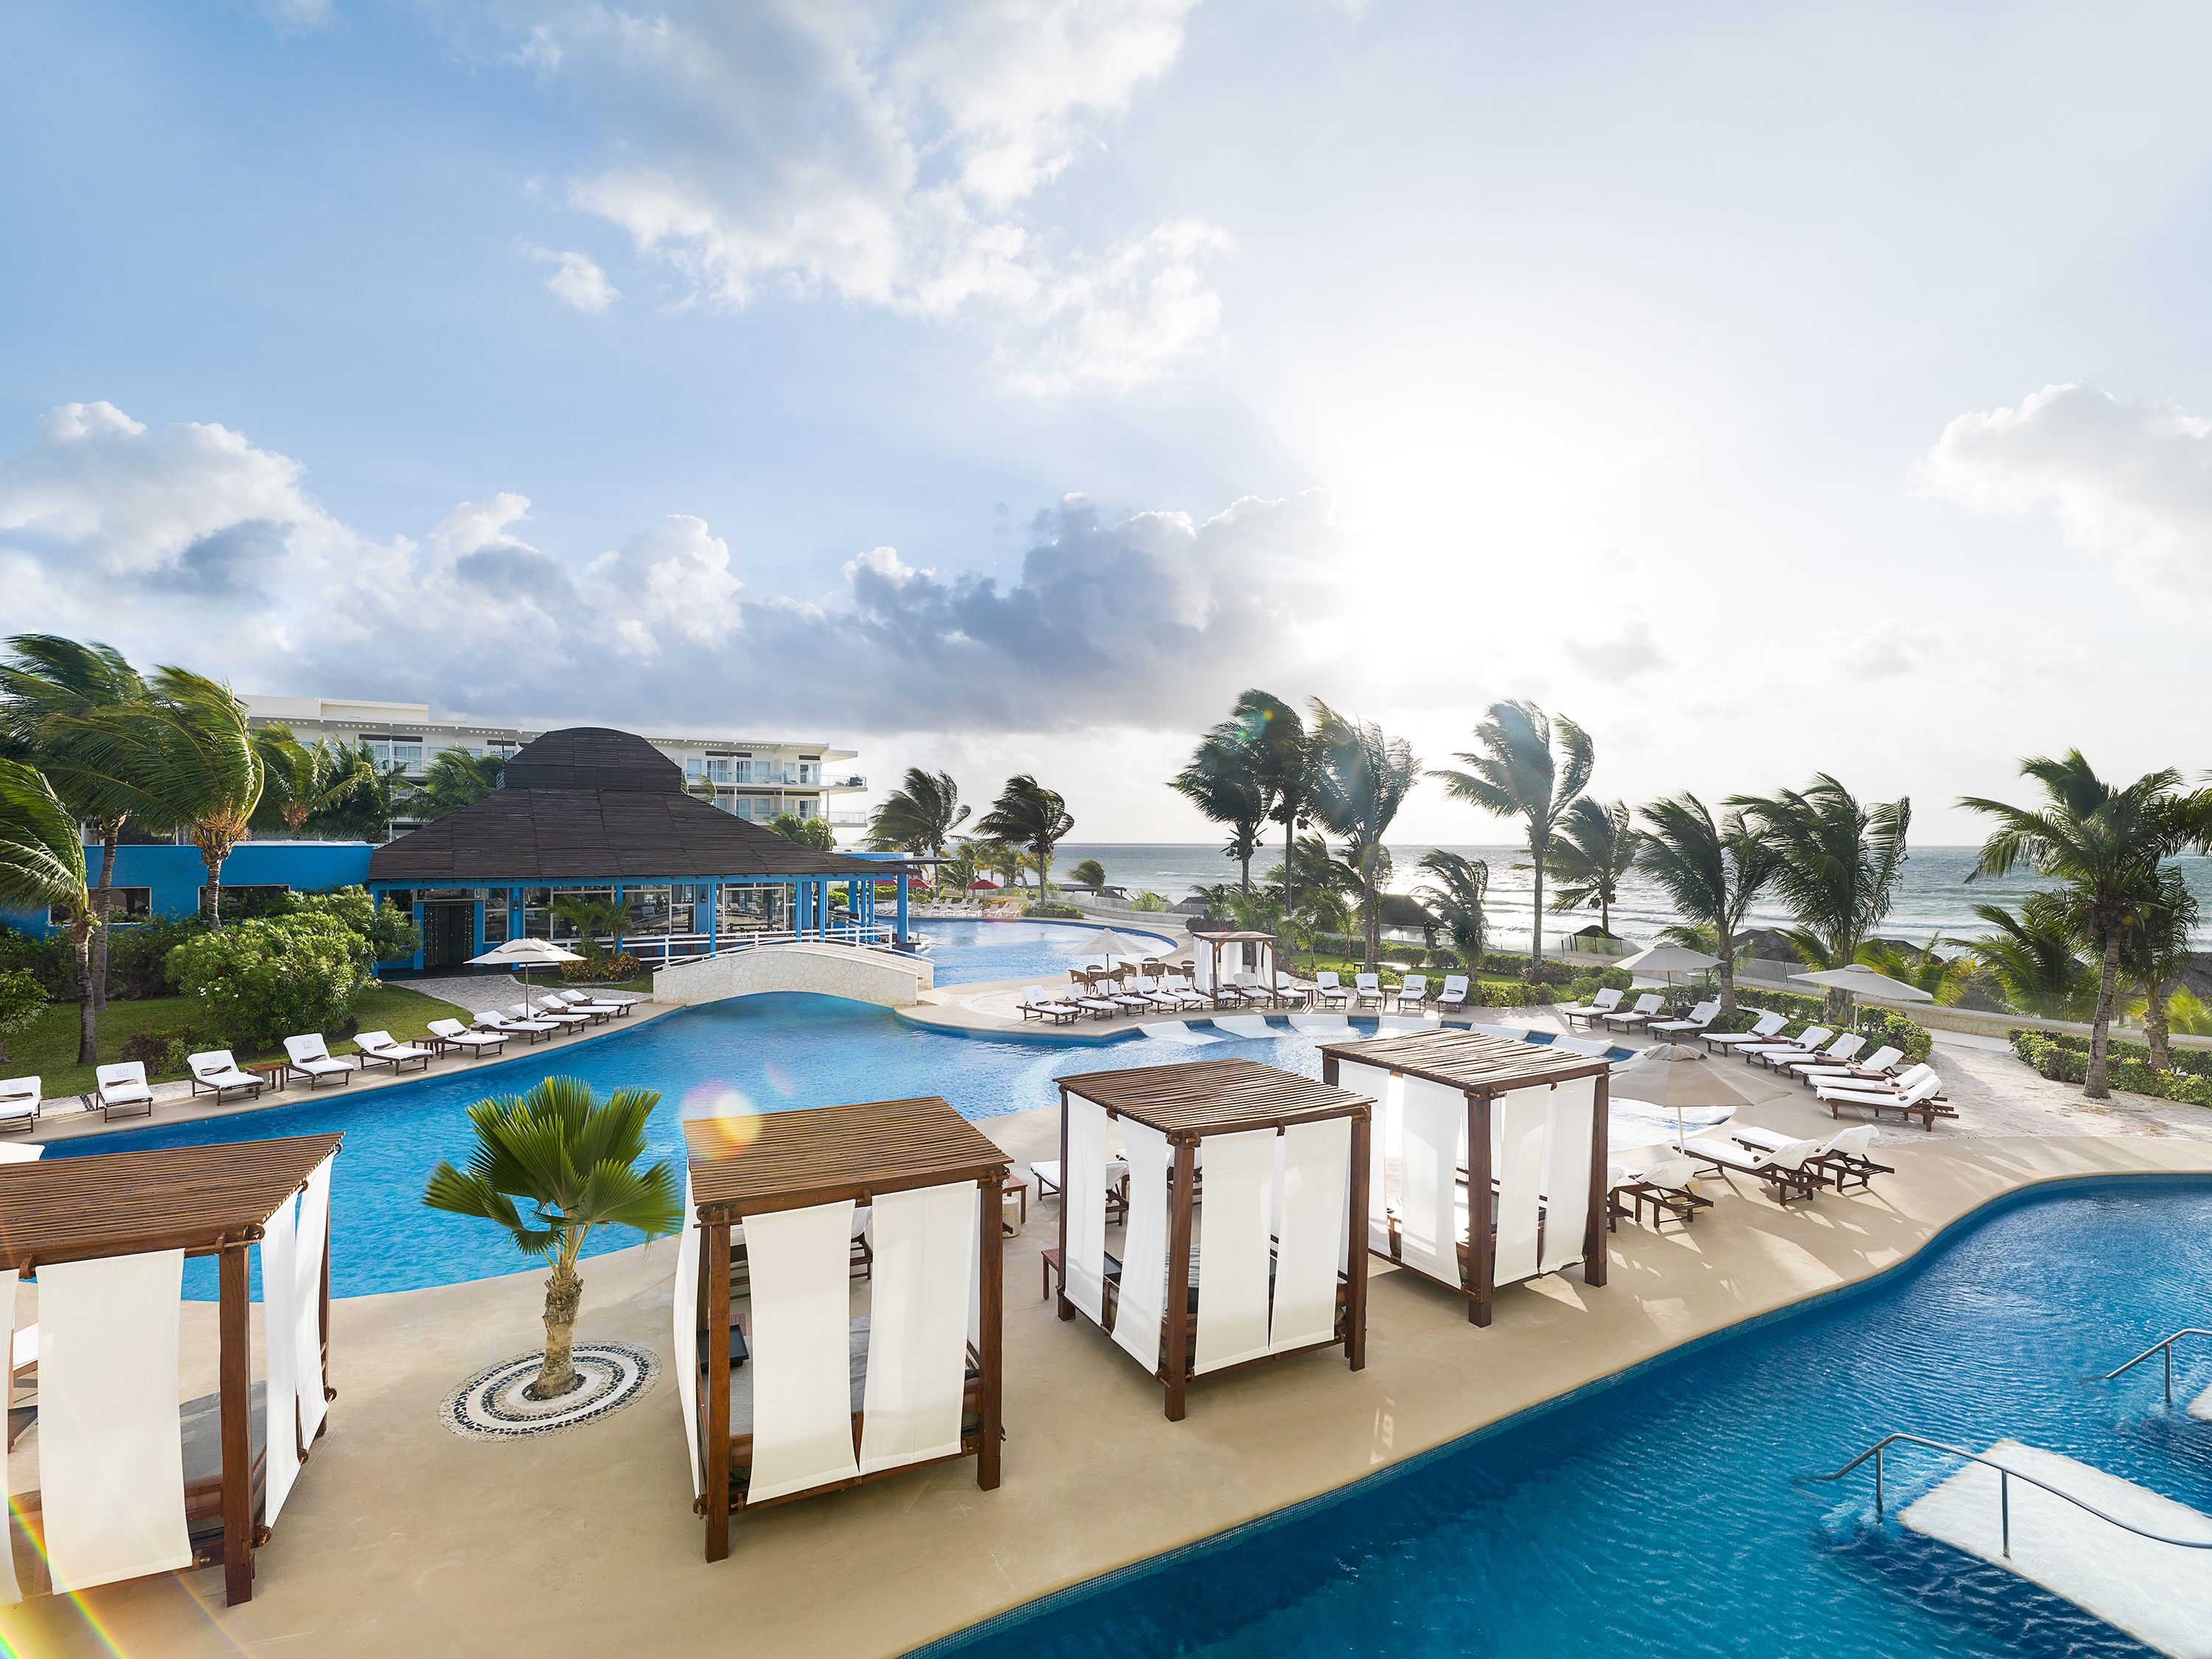 The Swimming Pool At Azul Beach Resort Riviera Cancun An All Inclusive Family Friendly In Maya Mexico With Gourmet Cuisine